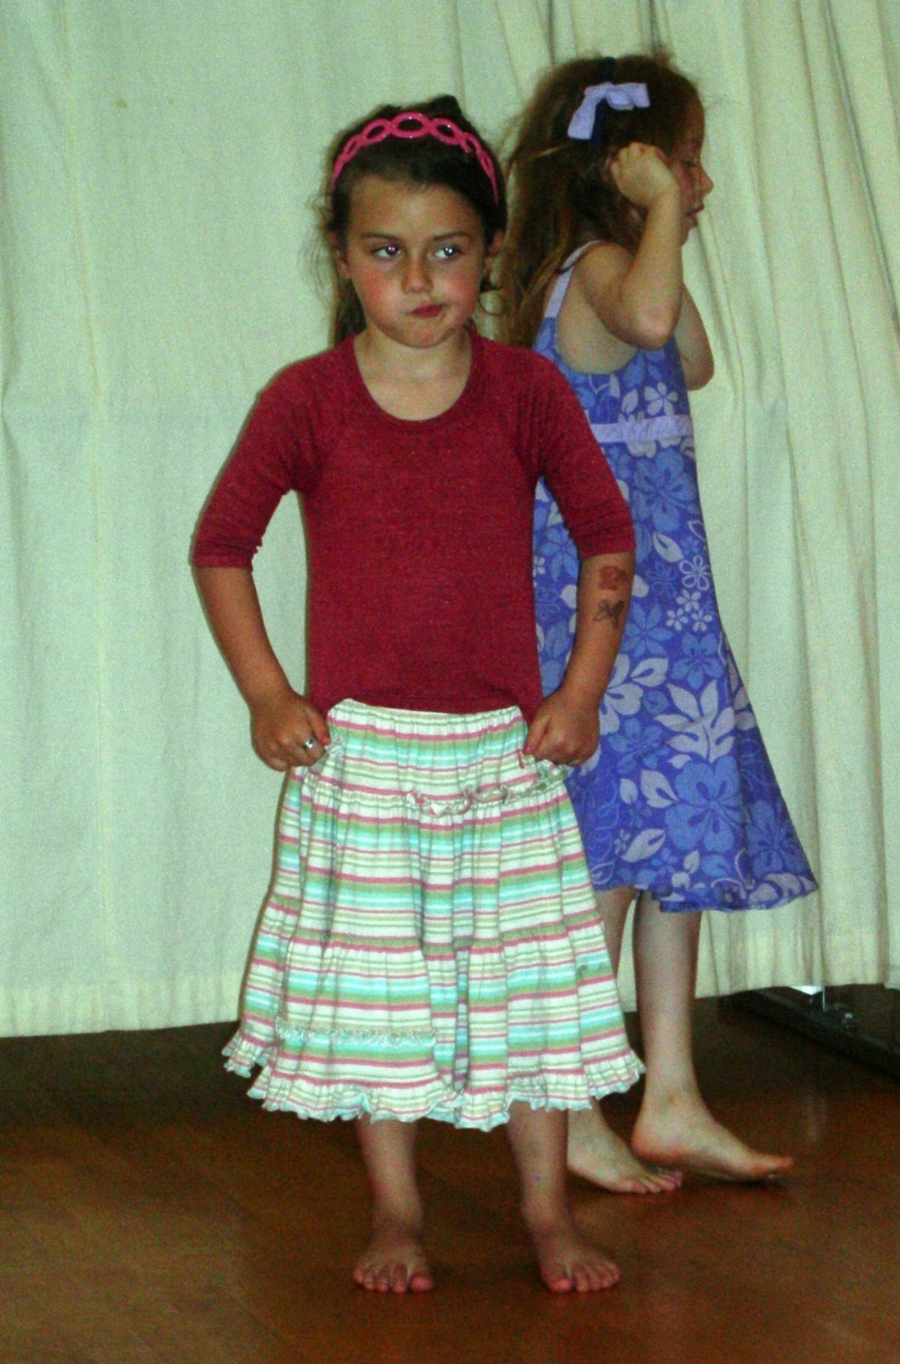 Lucia in her first year of dance with Erin at Spoke the Hub Dancing. 2007